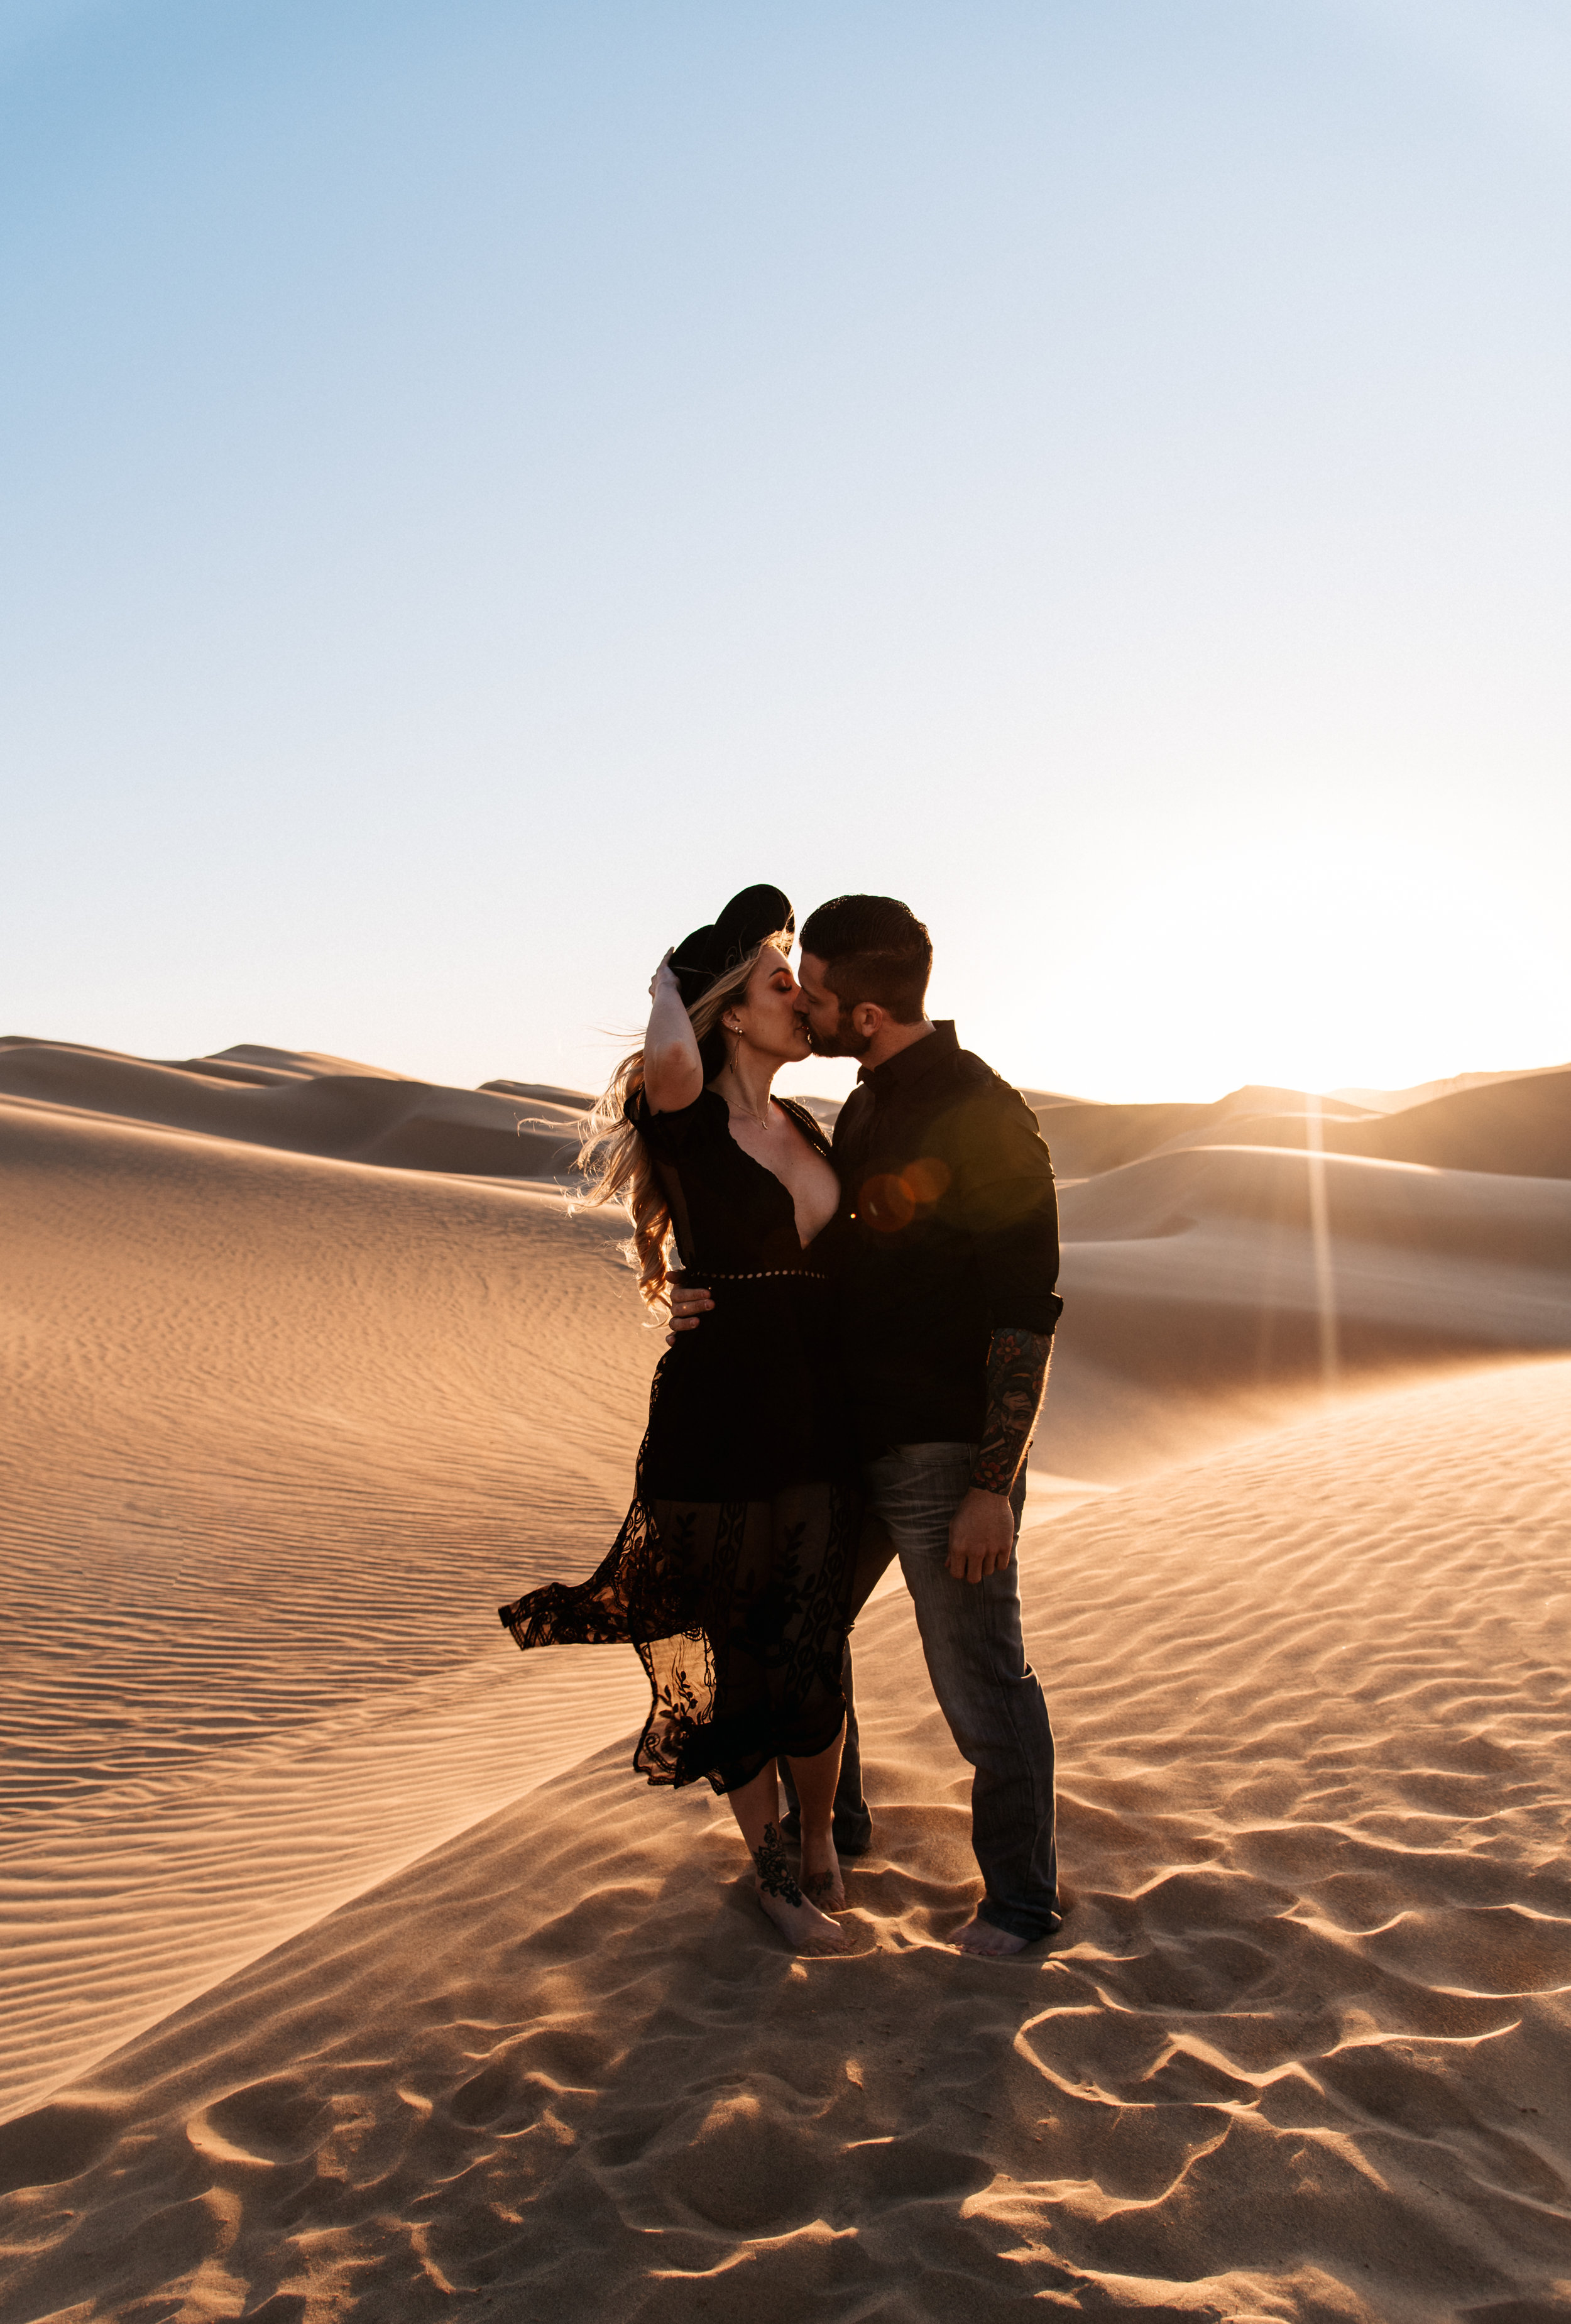 SamErica Studios - Modern San Diego Engagement Photographer - Adventure Engagement Session in Glamis Sand Dunes California-44.jpg